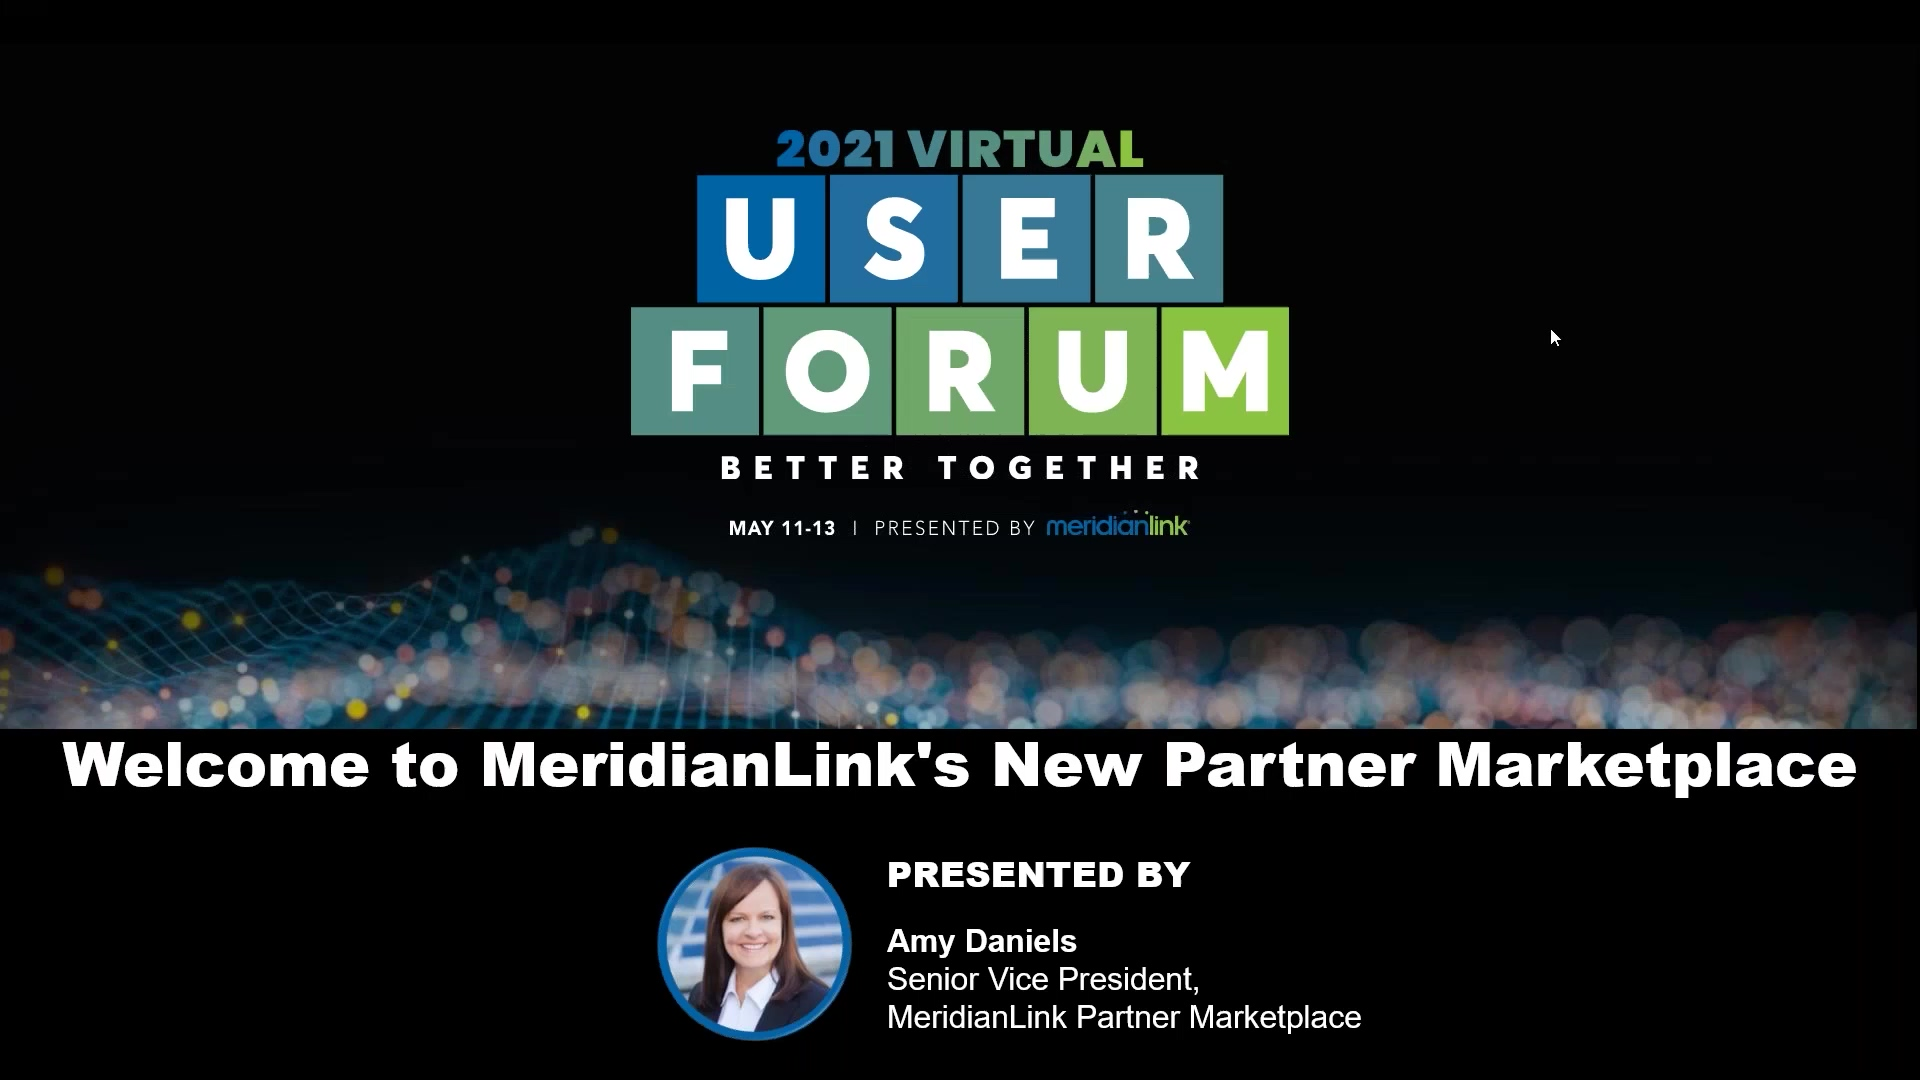 Welcome to MeridianLinks New Partner Marketplace